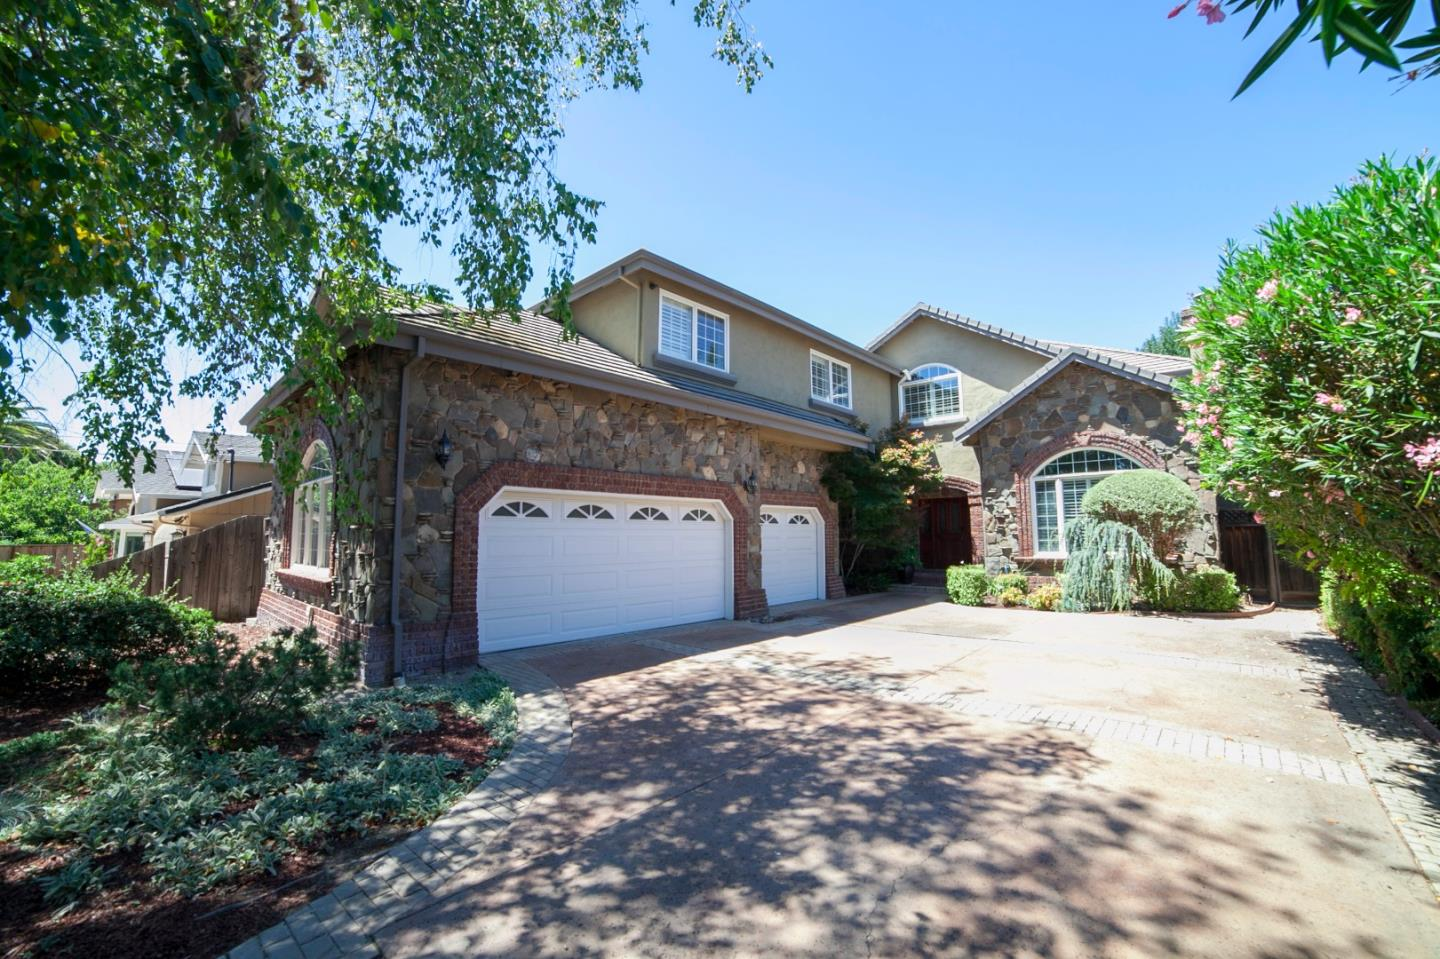 Additional photo for property listing at 1514 Padres Drive  San Jose, California 95125 Estados Unidos